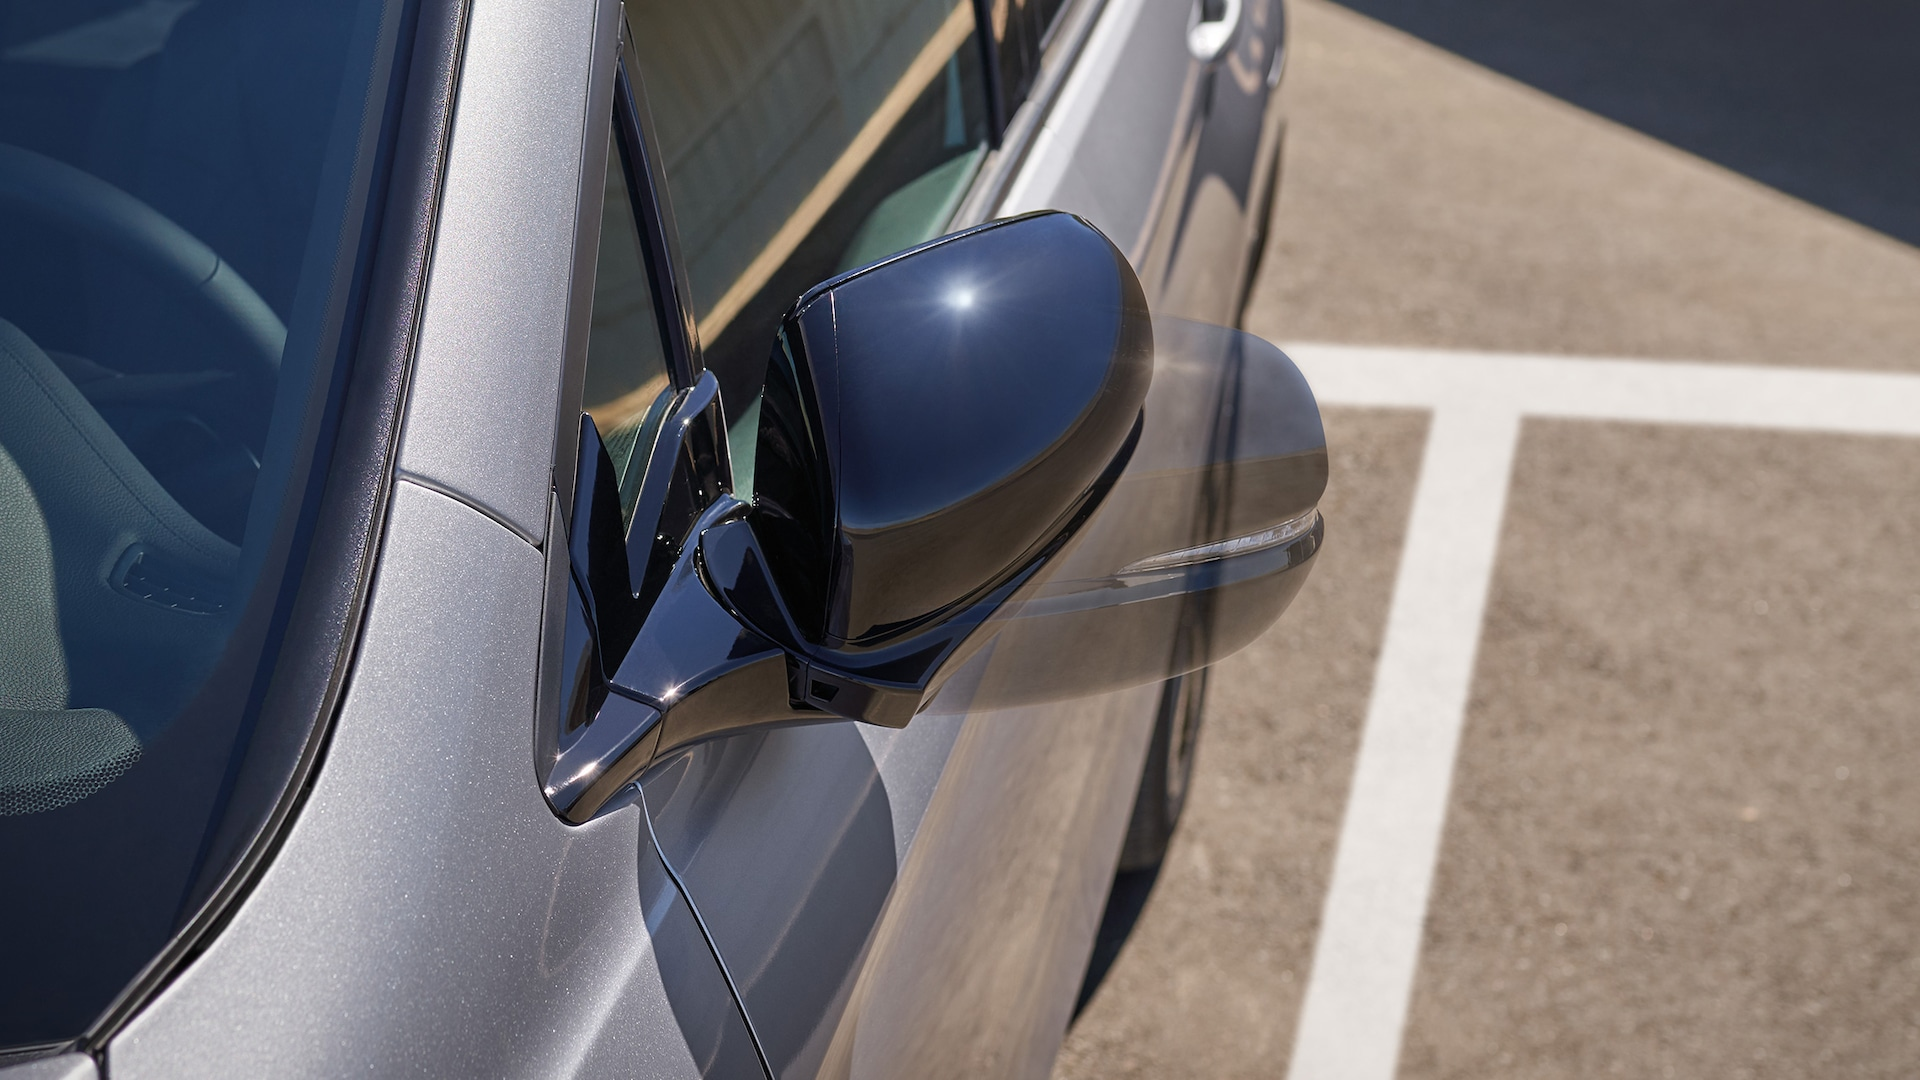 2020 Honda Passport Elite in Lunar Silver Metallic demonstrating movement of the automatic-dimming, power- folding side mirror.